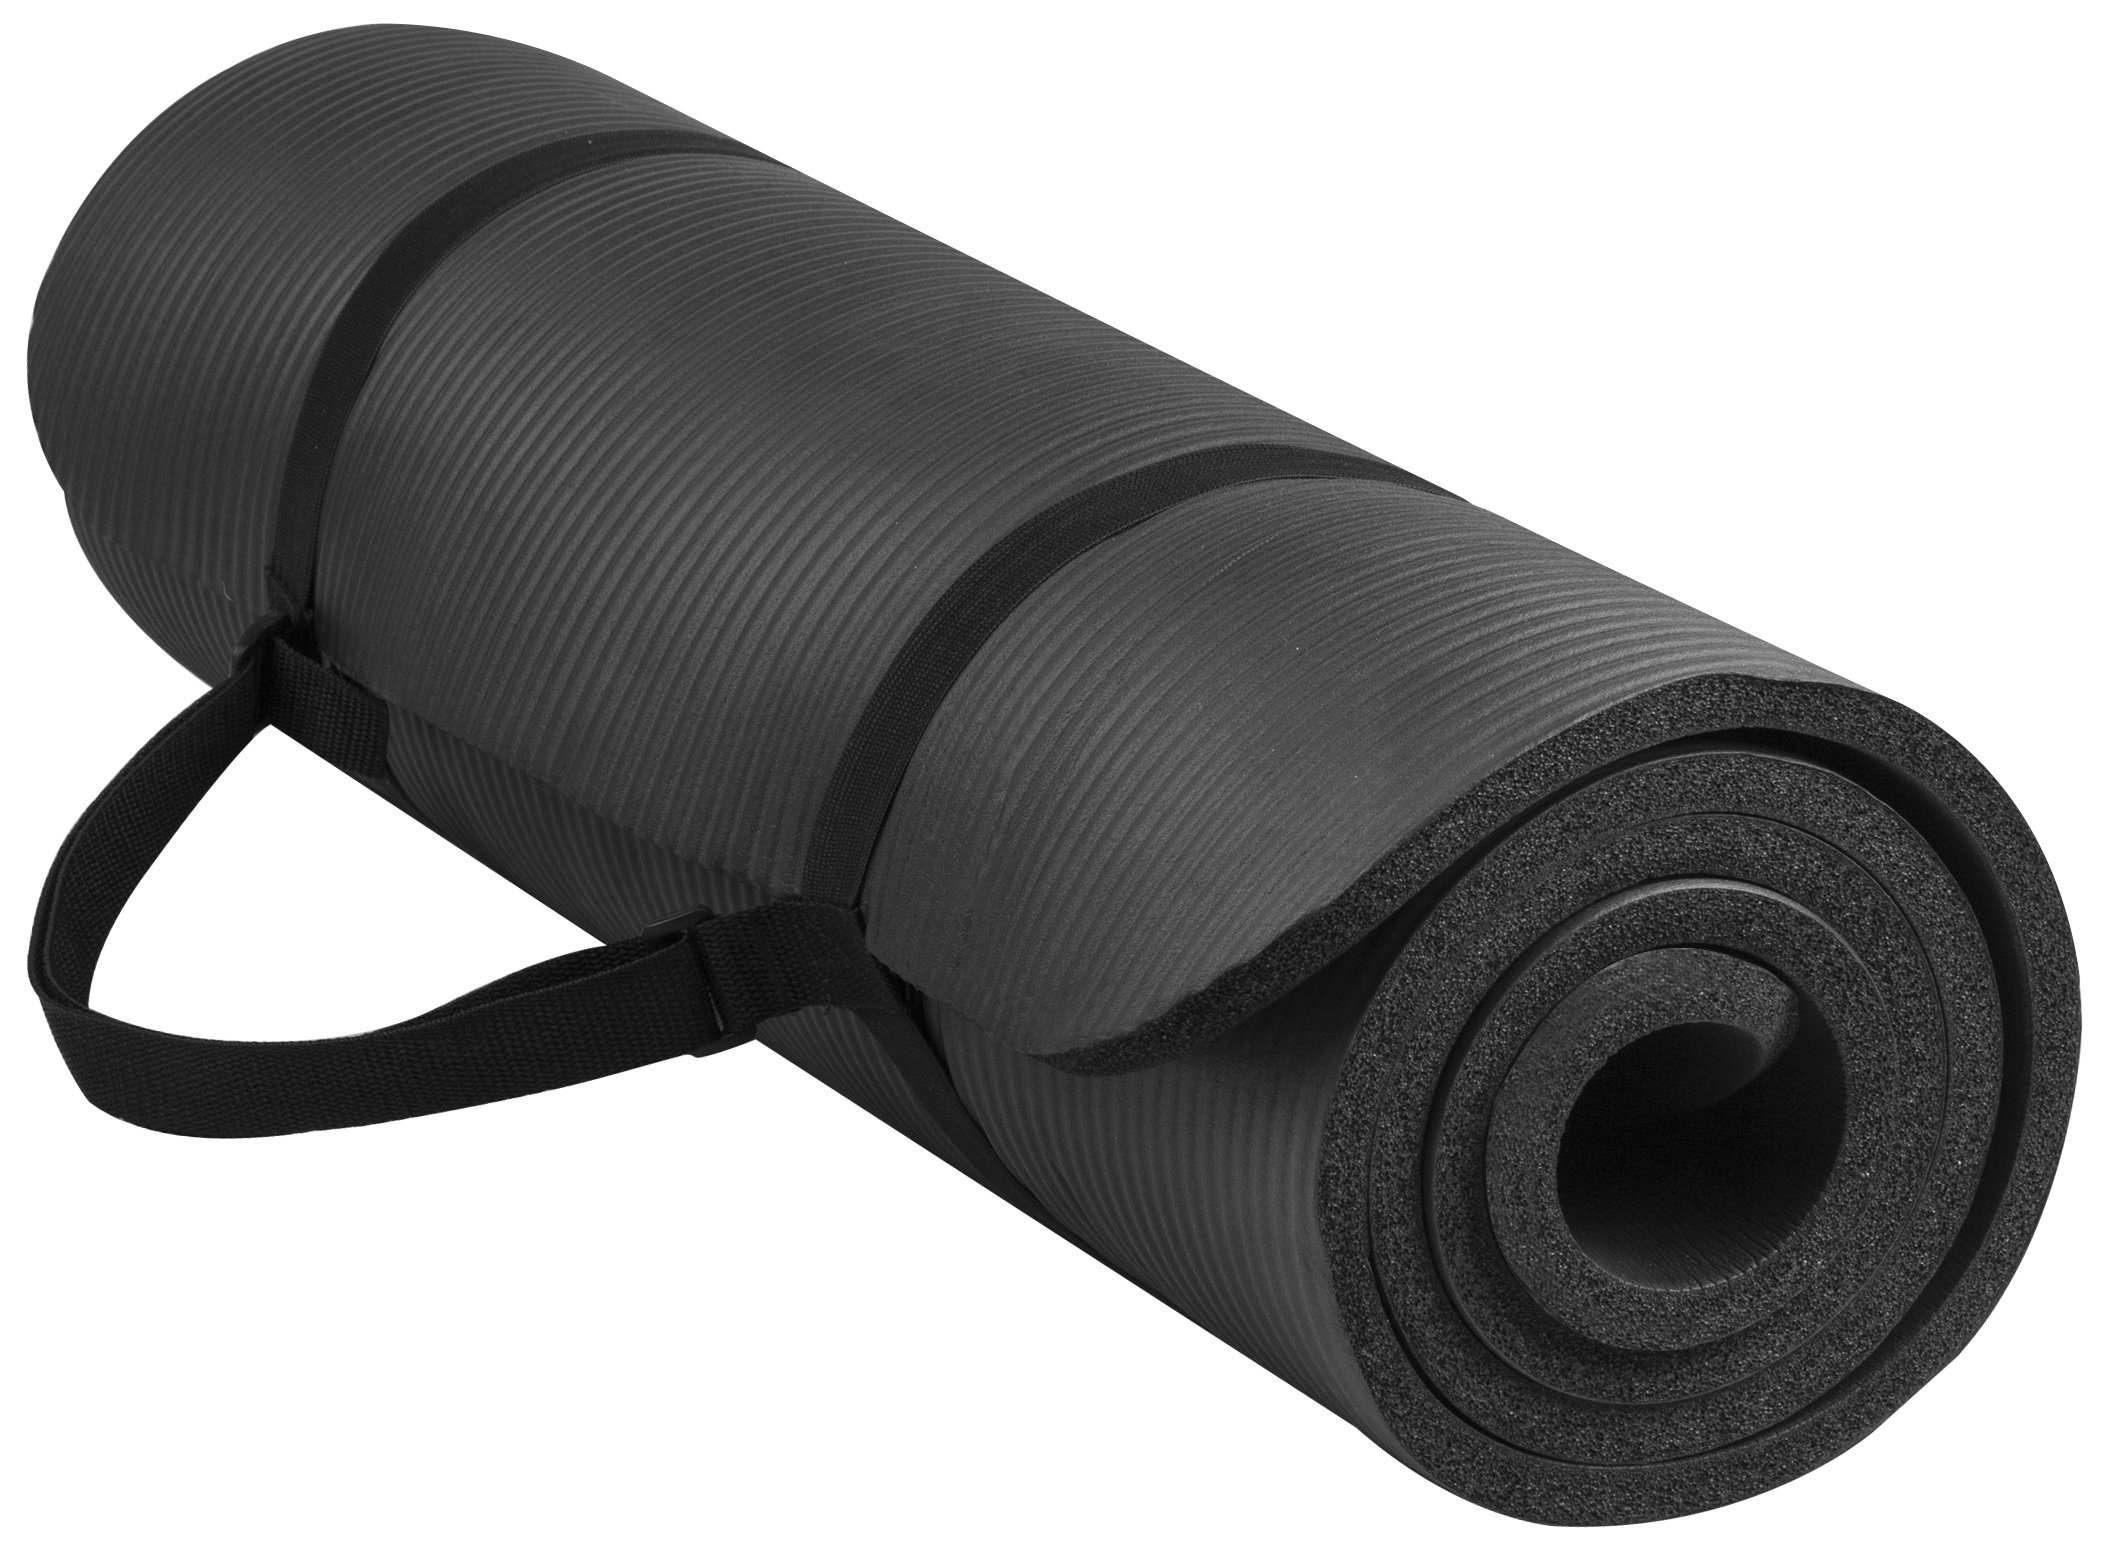 BalanceFrom BFGY-AP6BLK Go Yoga All Purpose Anti-Tear Exercise Yoga Mat with Carrying Strap, Black by BalanceFrom